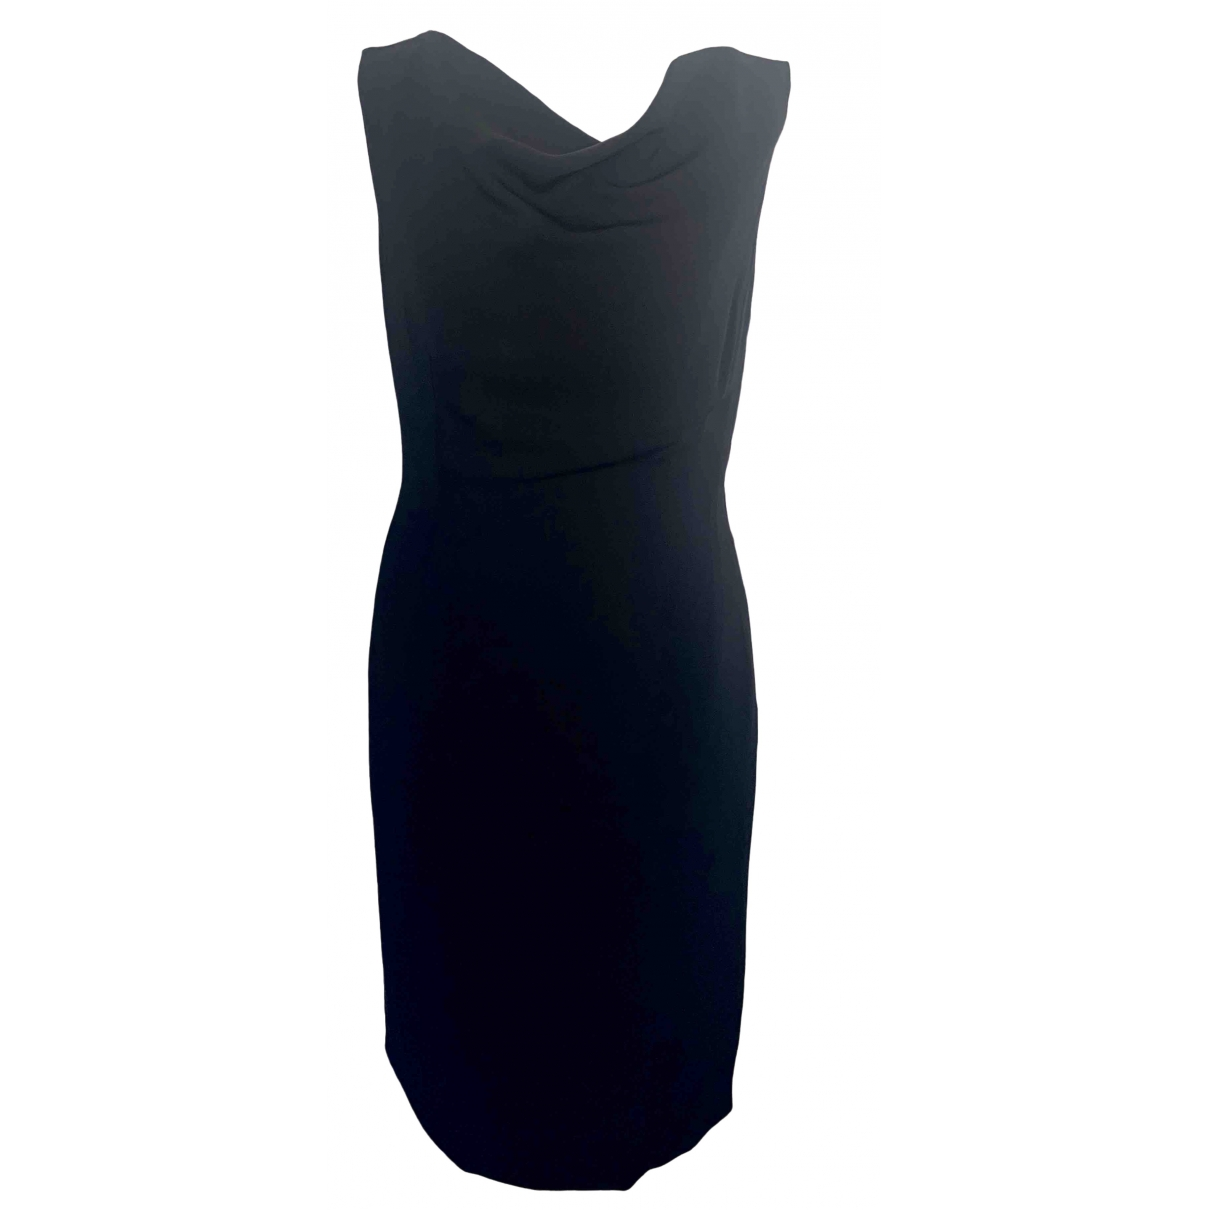 Moschino Cheap And Chic \N Black Silk dress for Women 40 IT